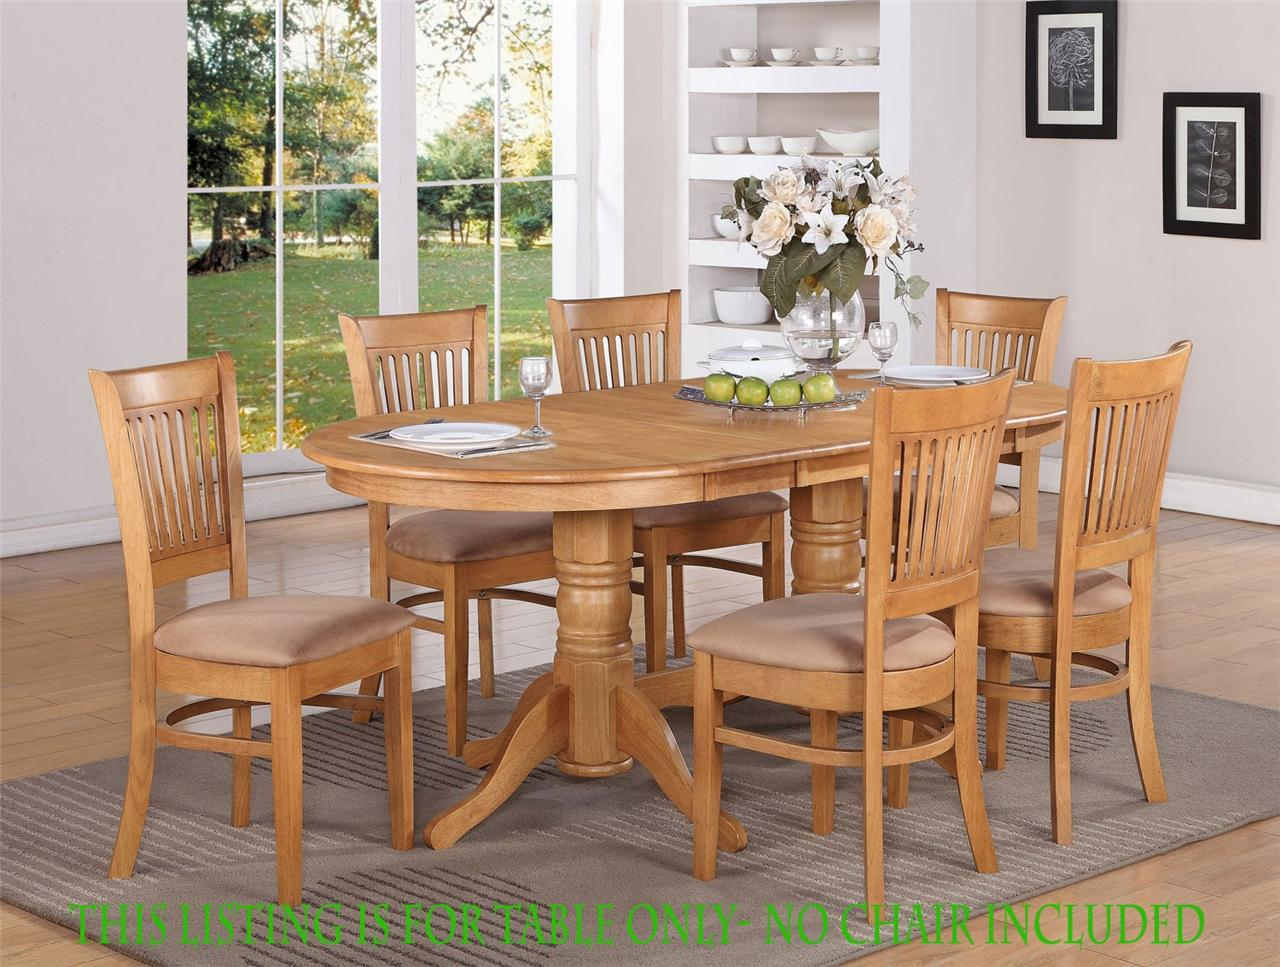 oval dinette dining room table 40 x76 butterfly leaf in oak finish